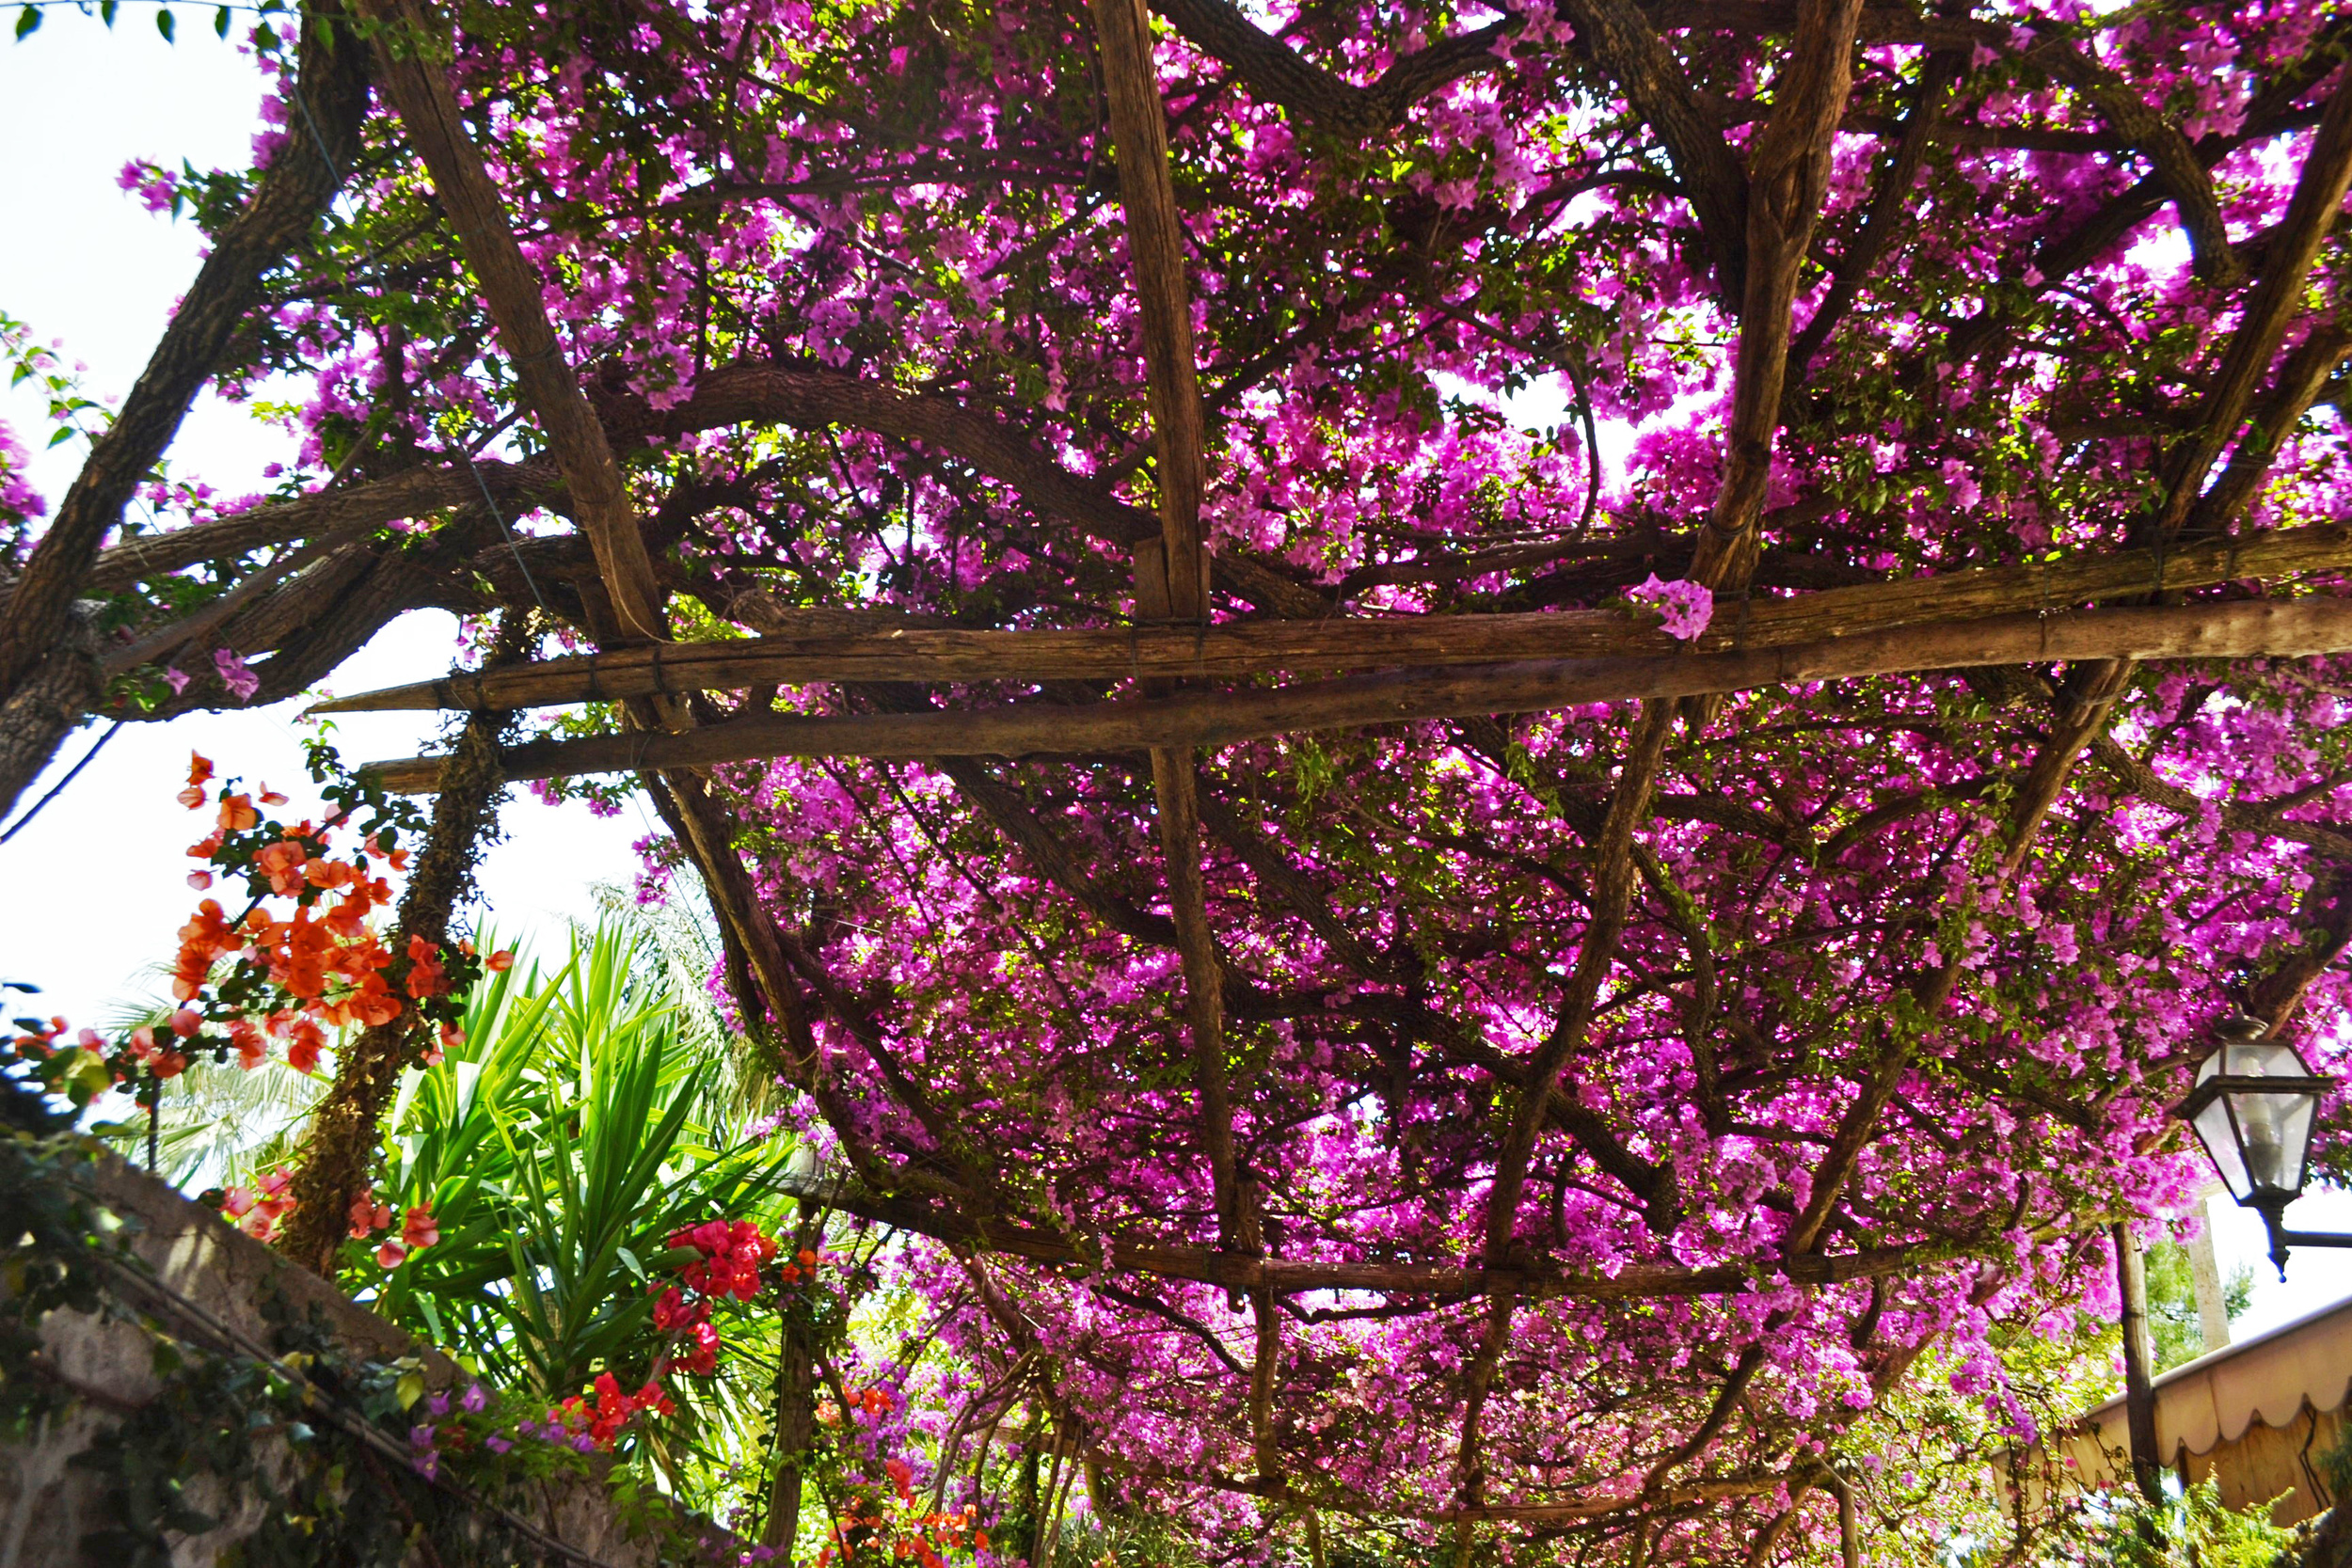 Canopy of Purple Flowers